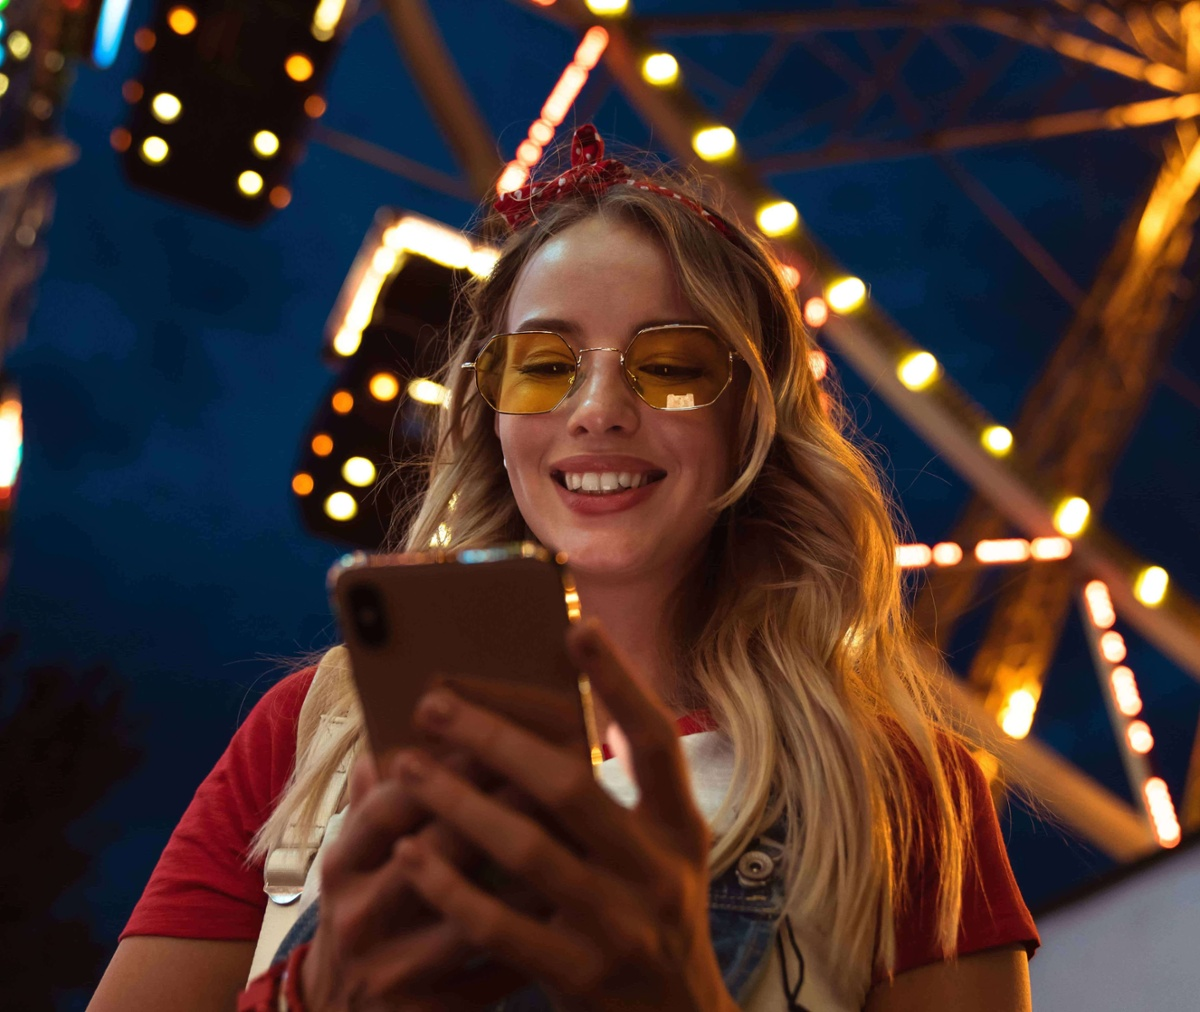 Woman looking at mobile screen at music festival